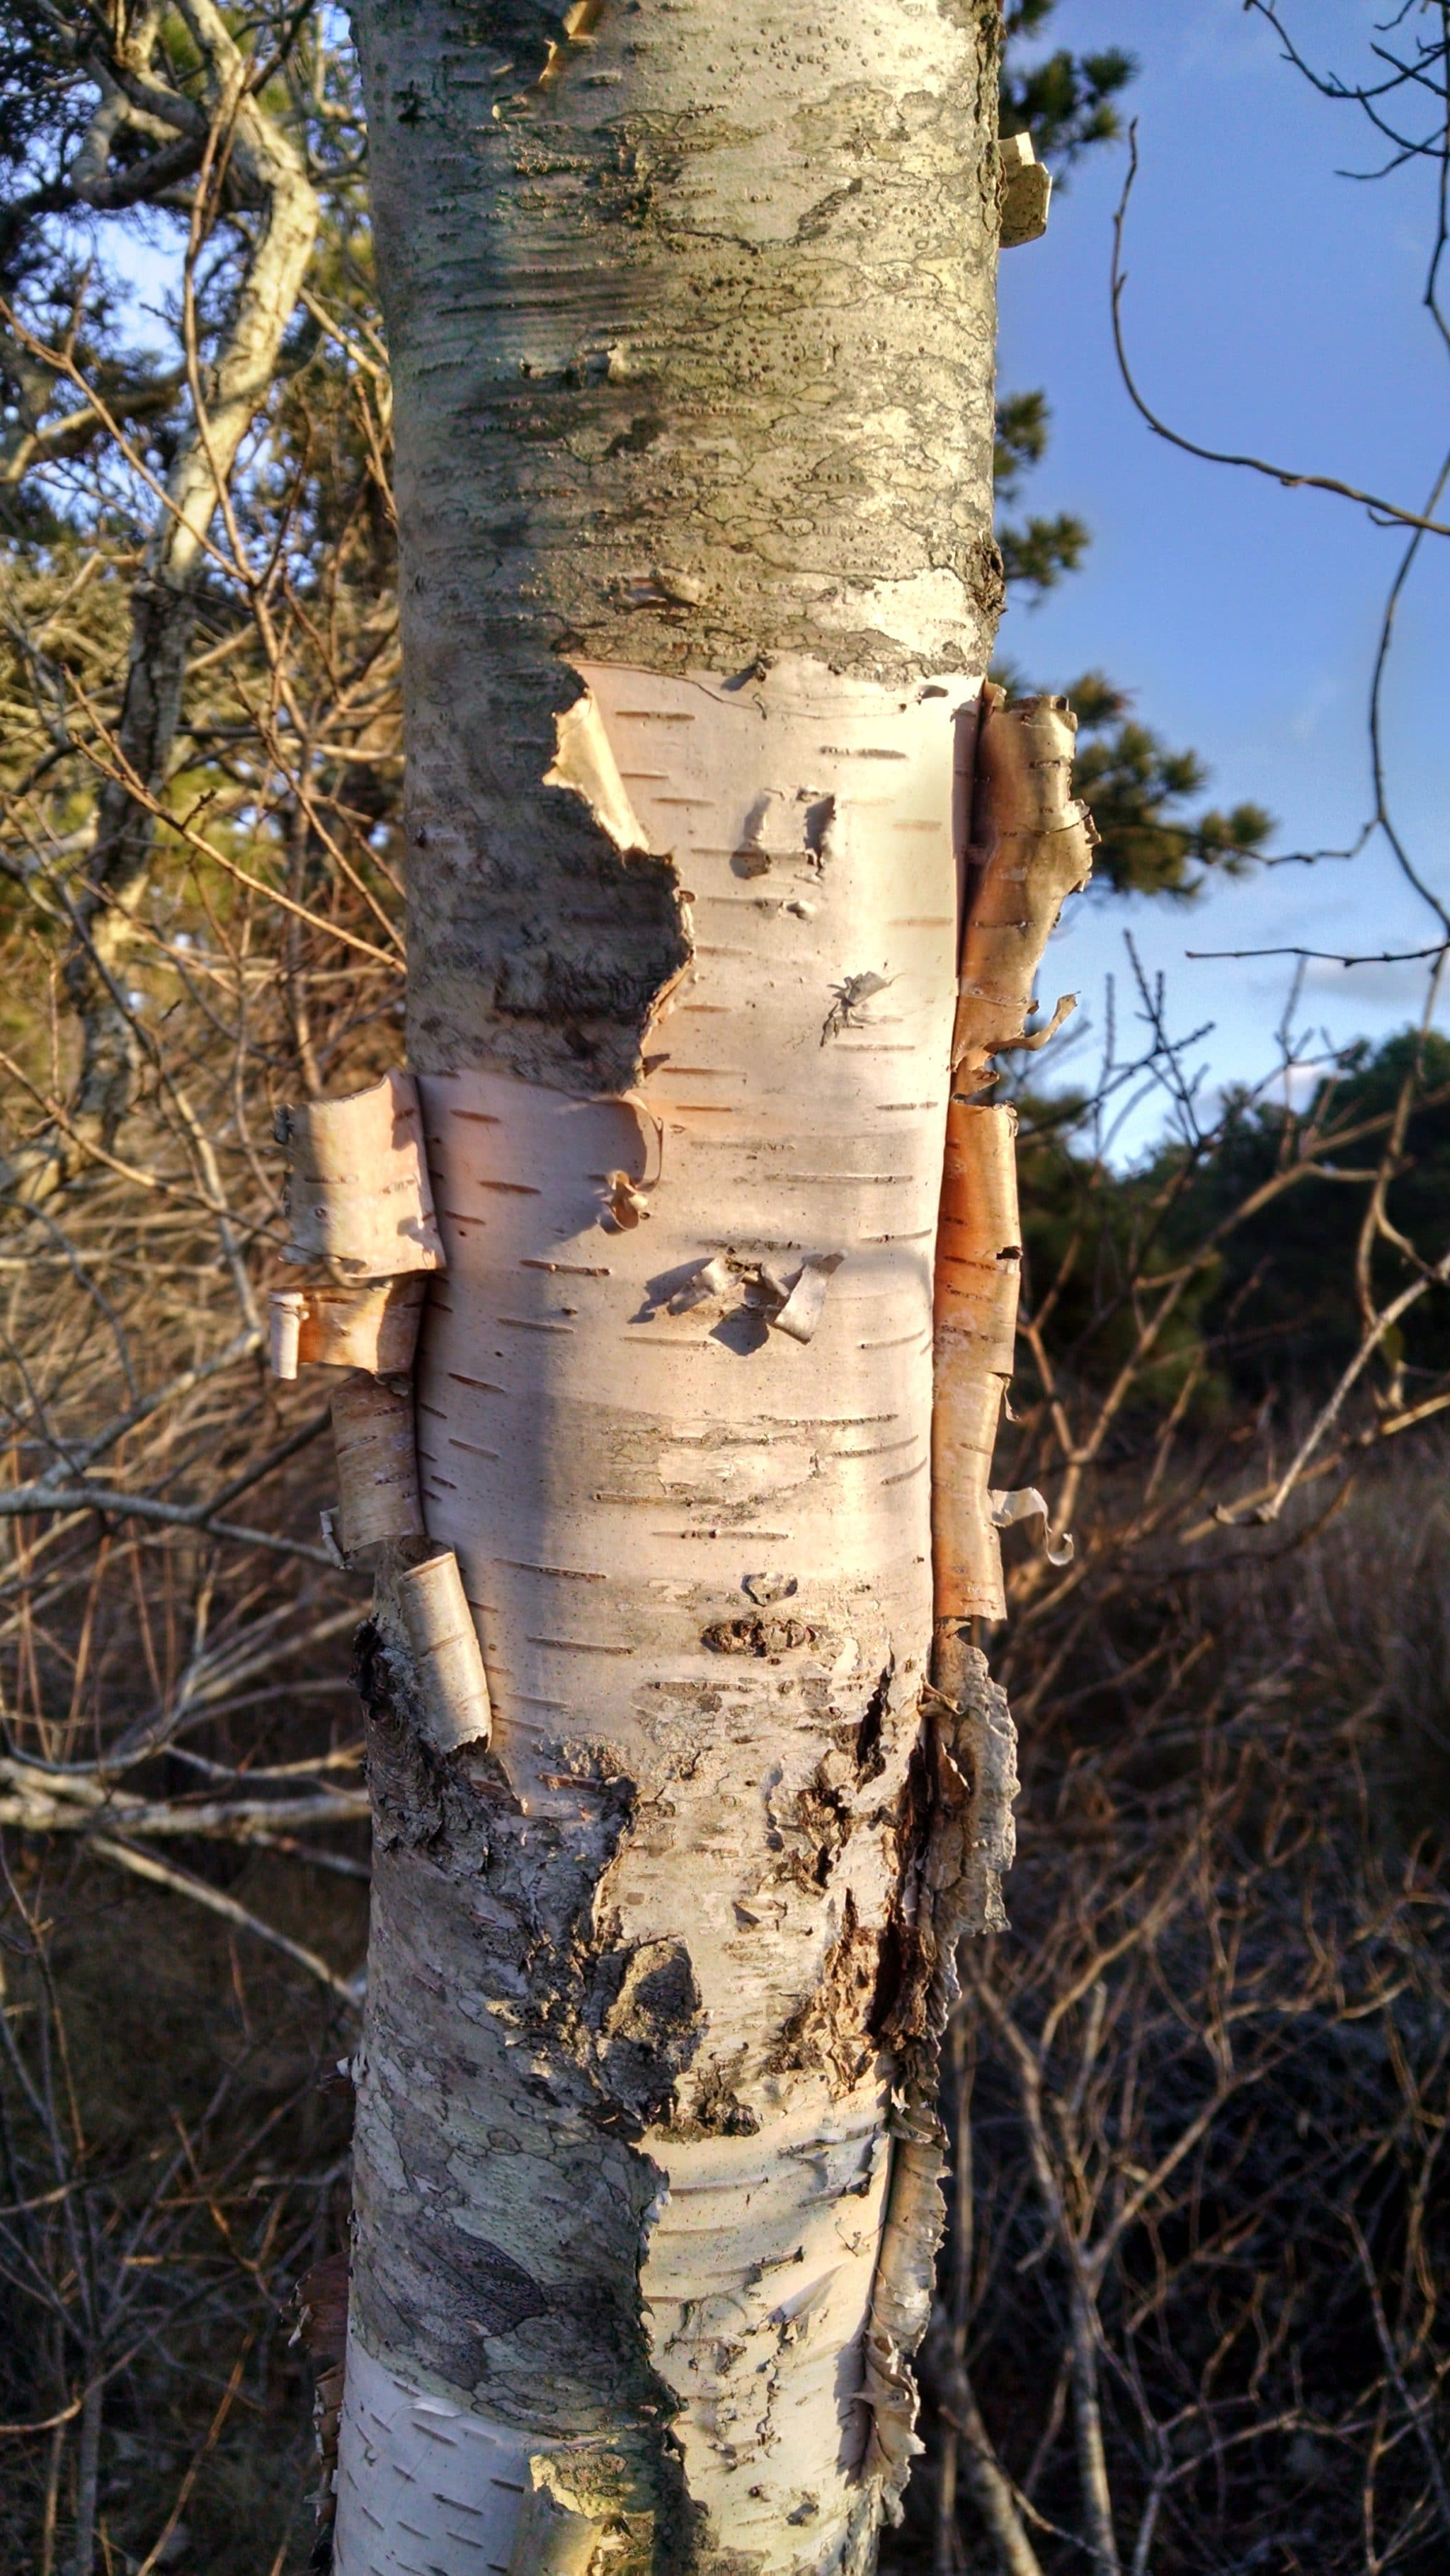 Paper birch (Betula papyrifera) on Nantucket? Maybe just one or two...